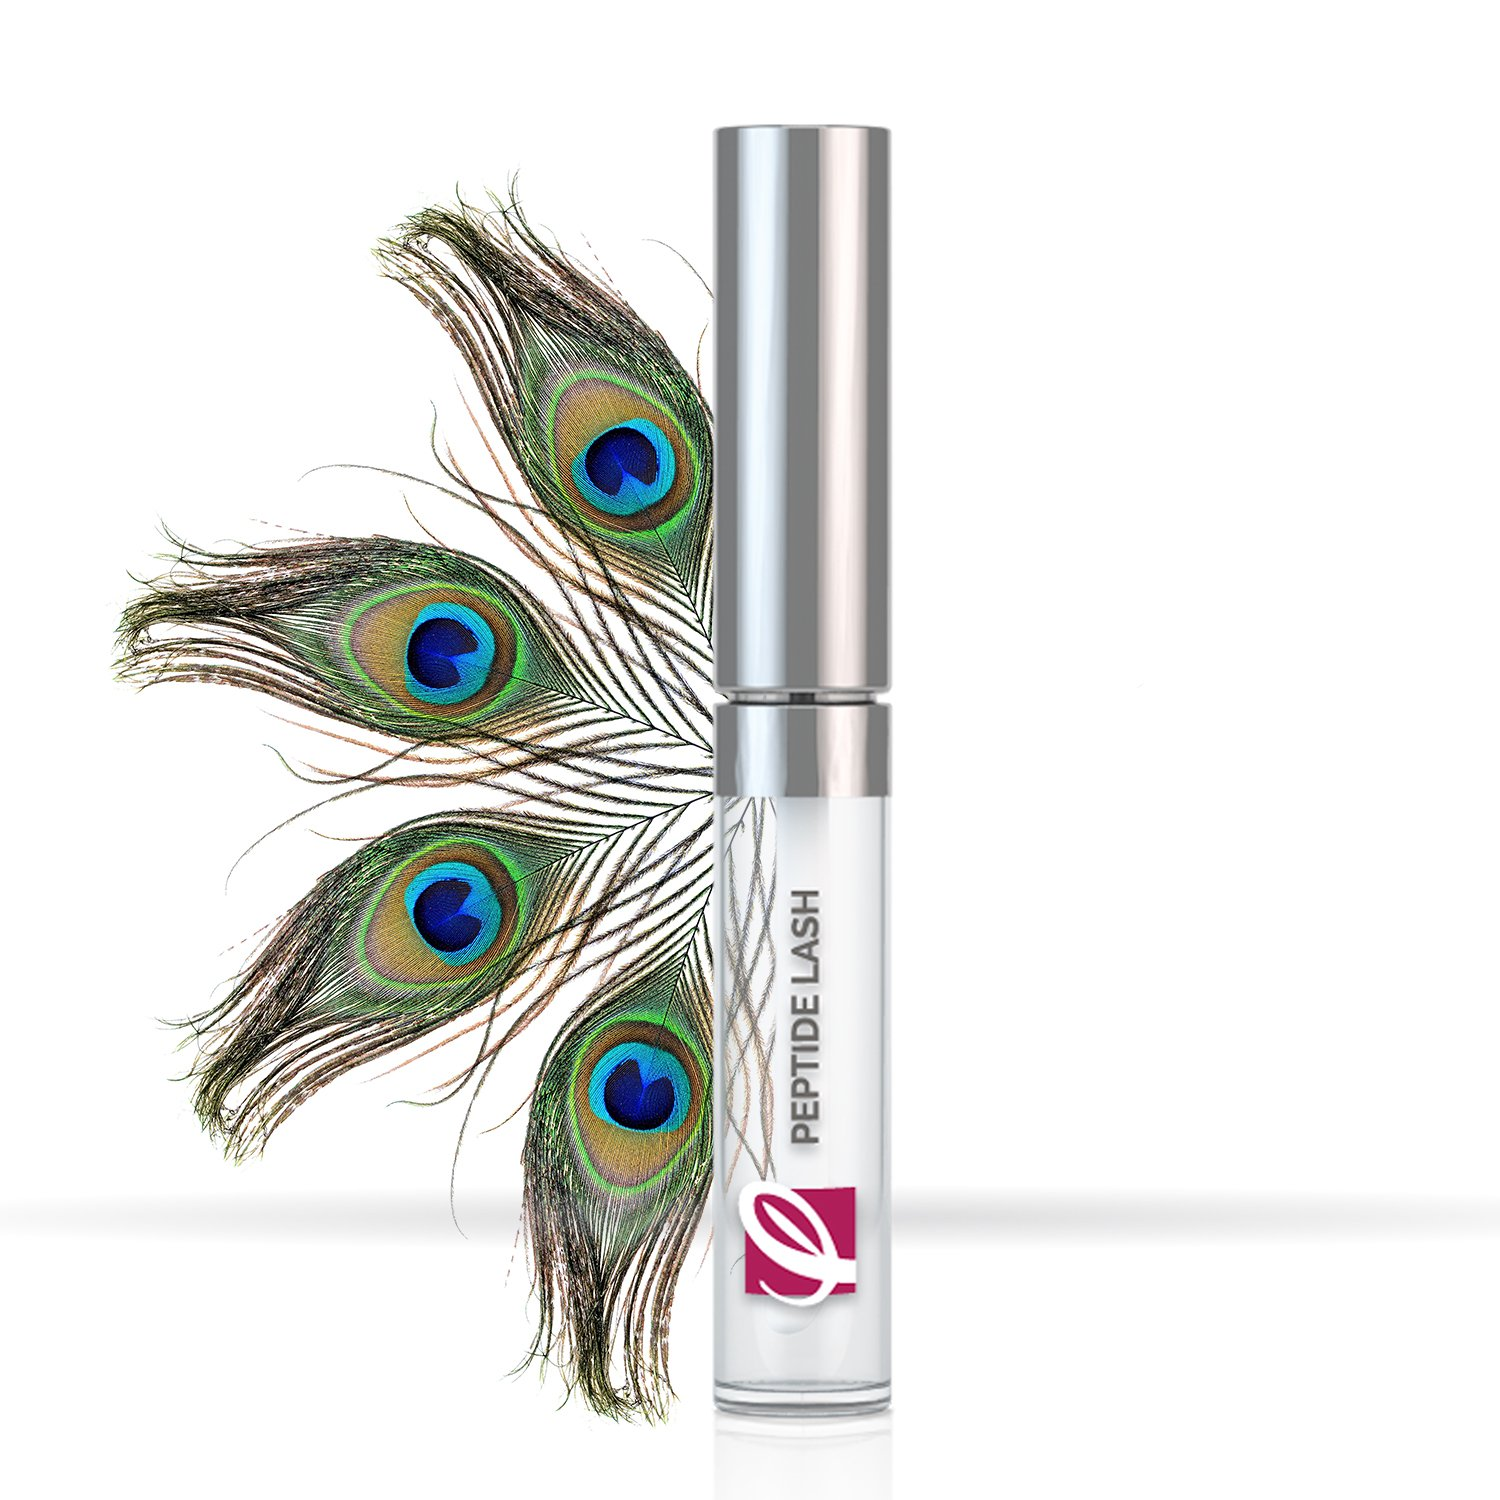 Eyelash Growth Serum - Lash Boost Fuller Grow Special Campaign To Long Lashes Max 70% OFF and